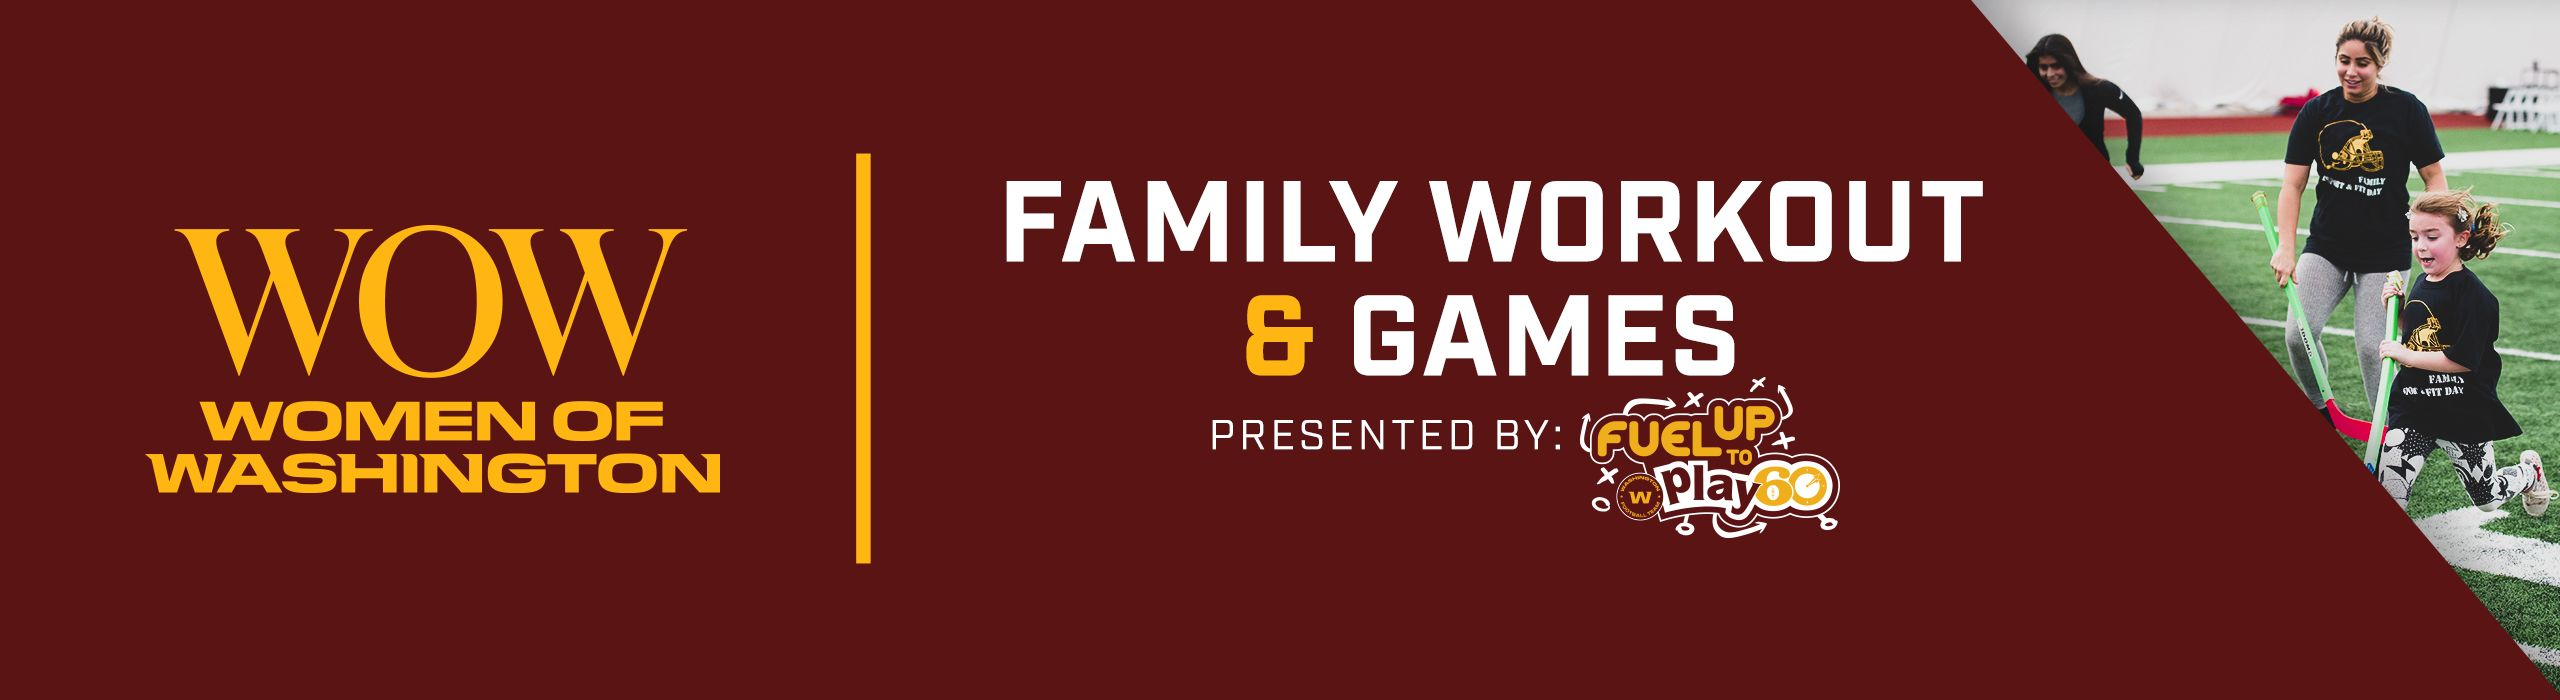 WOW_FamilyWorkout+Games_Graphics_FormstackHeader_v2